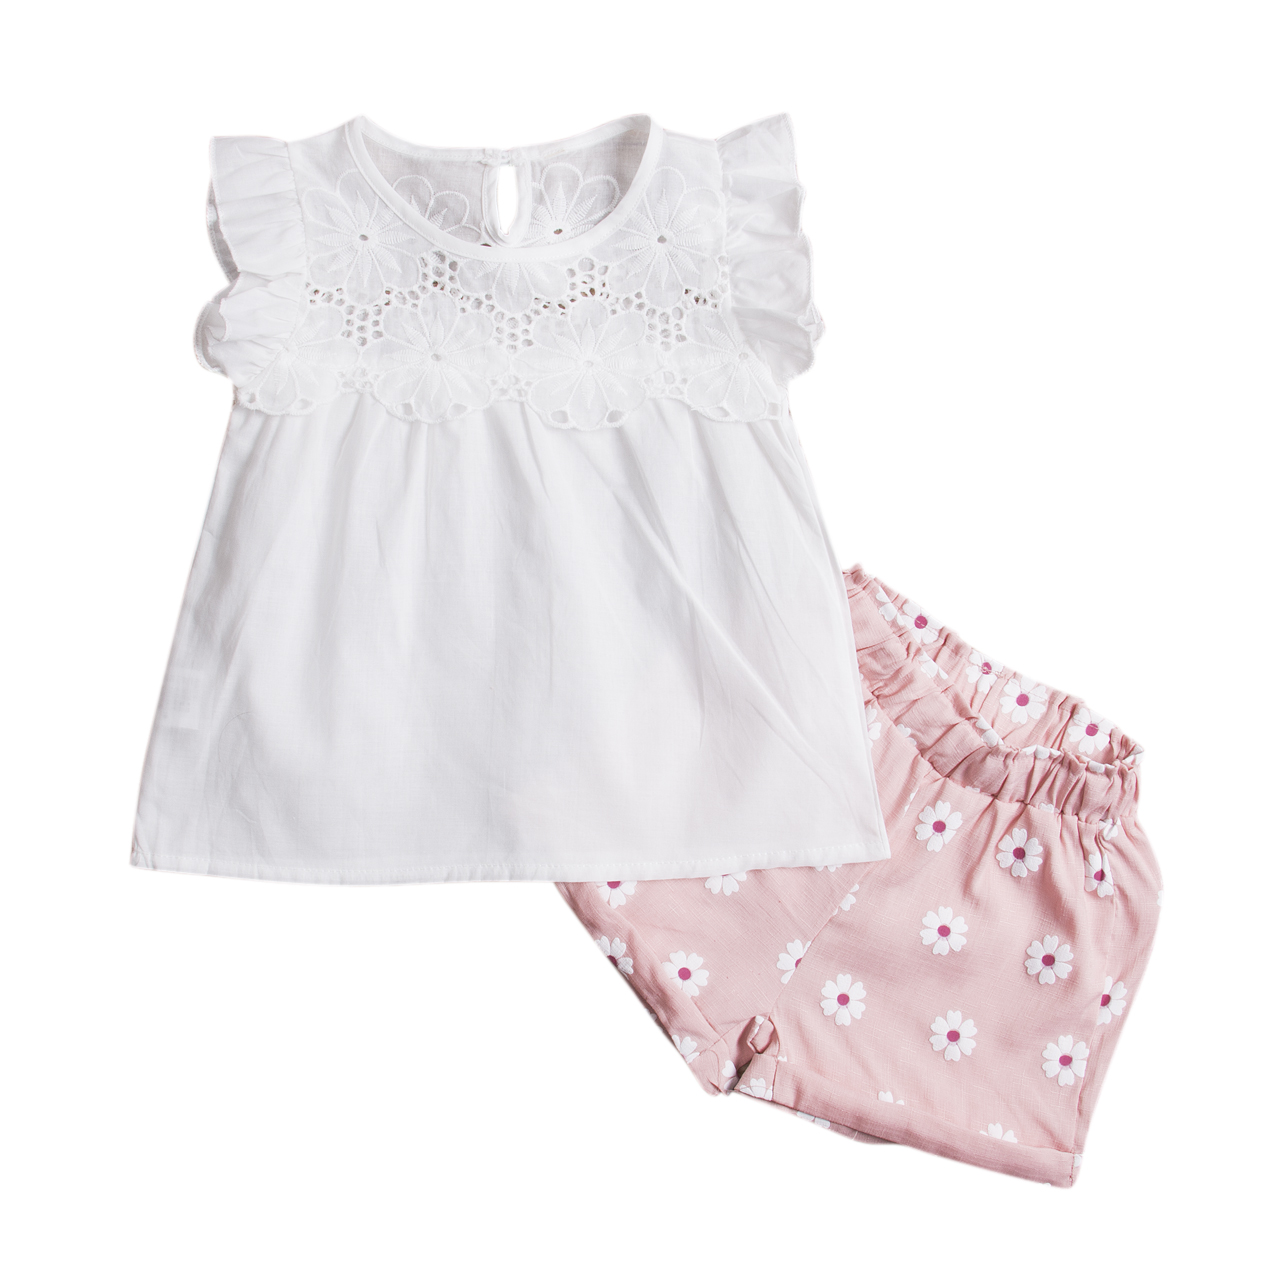 2-7Y Toddler Kids Baby Girls Summer Outfits Clothes Set Lace Sleeveless Floral Cotton Blouse Tops+ Short Pants 2PCS Set Sunsuit kid newborn summer clothes toddler baby boy girl sleeveless floral cotton romper outfits sunsuit